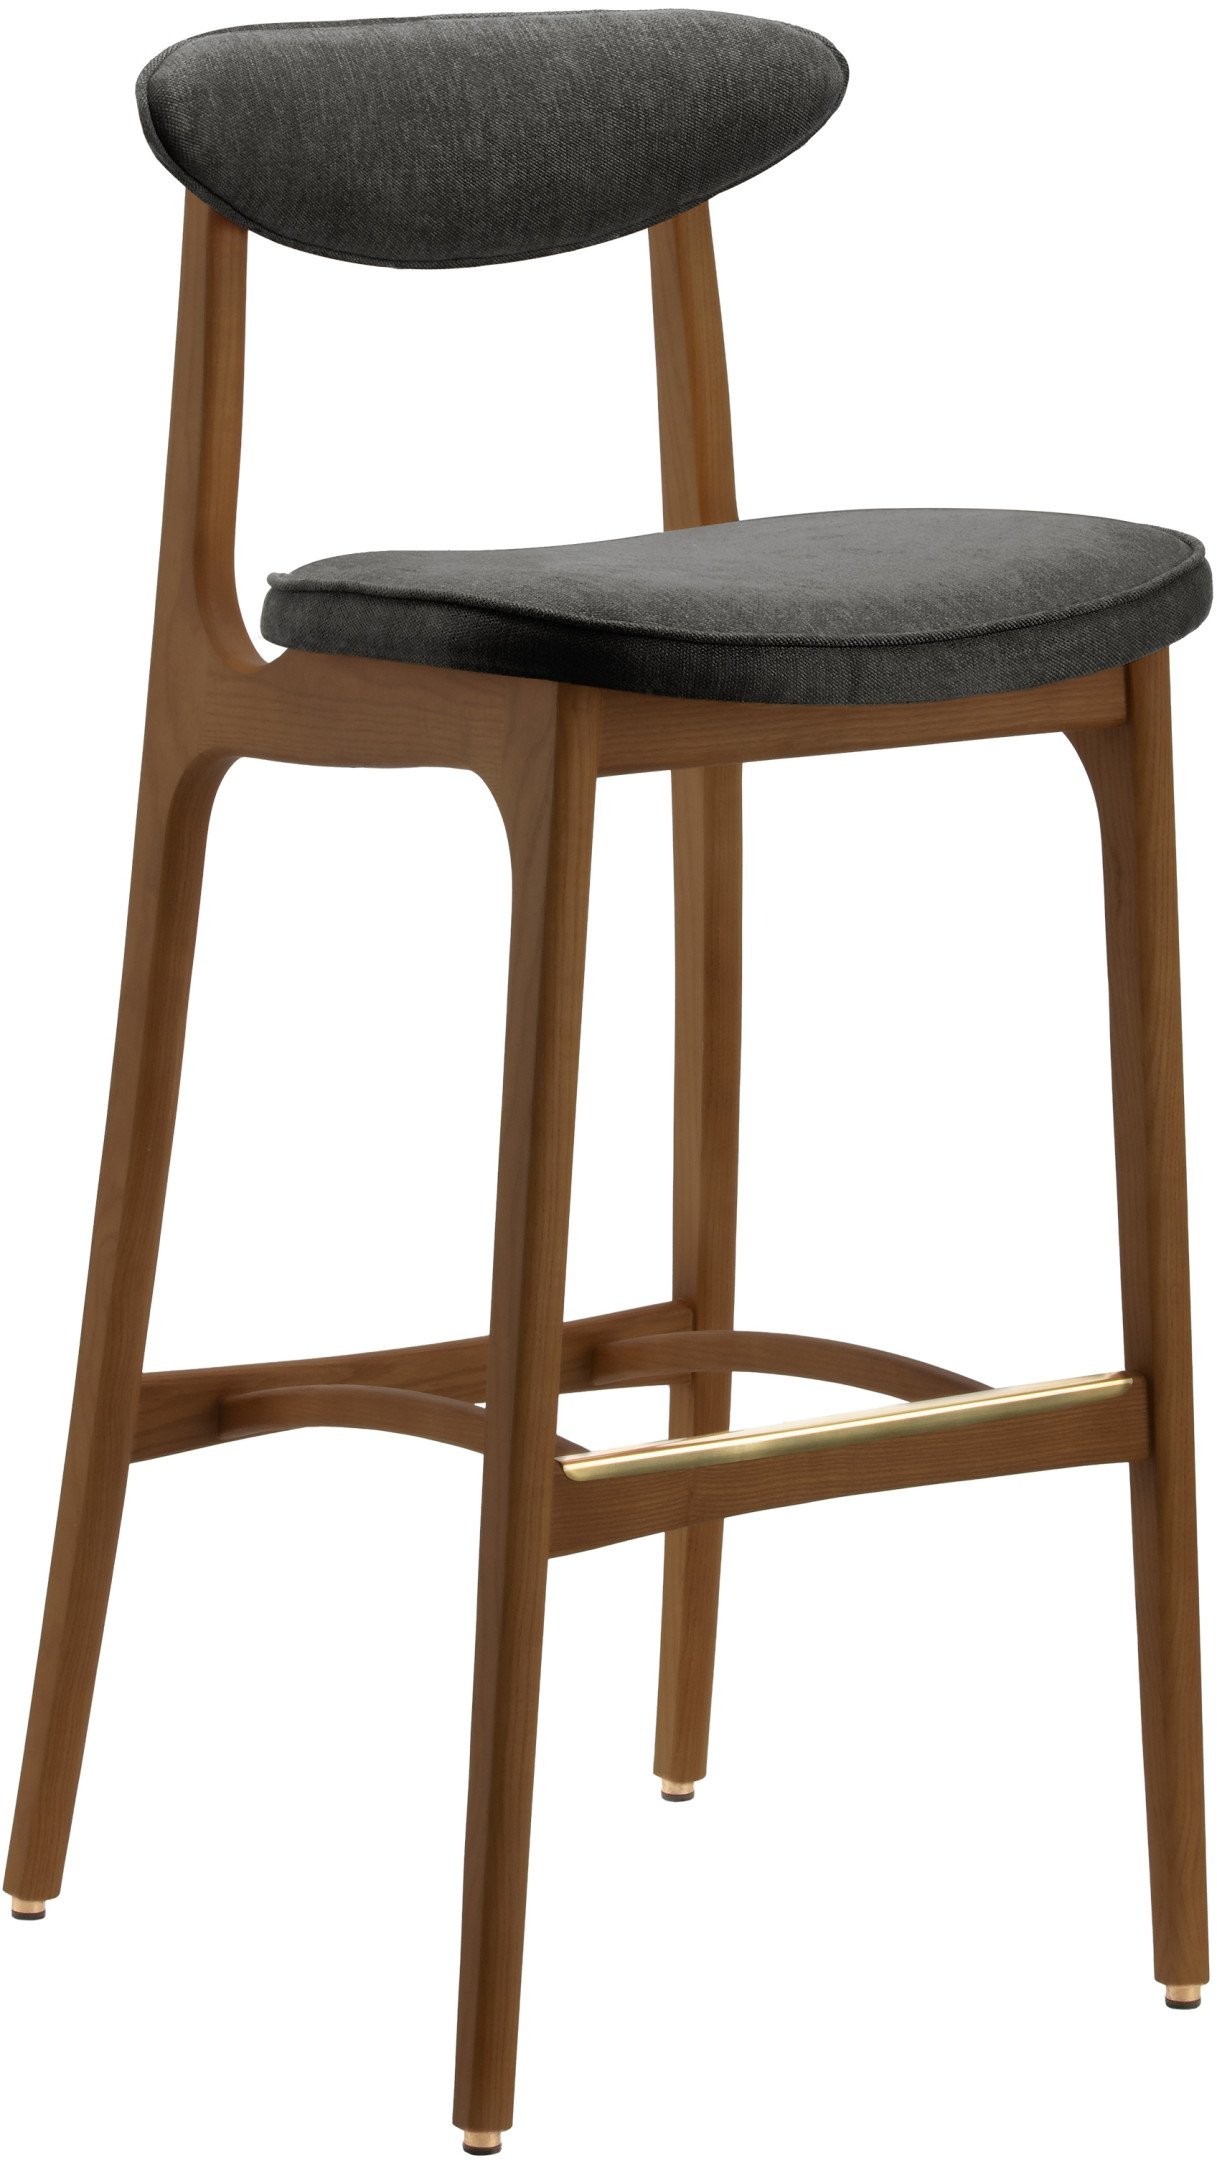 200-190 Bar Stool 75 Loft Grey, 366 Concept